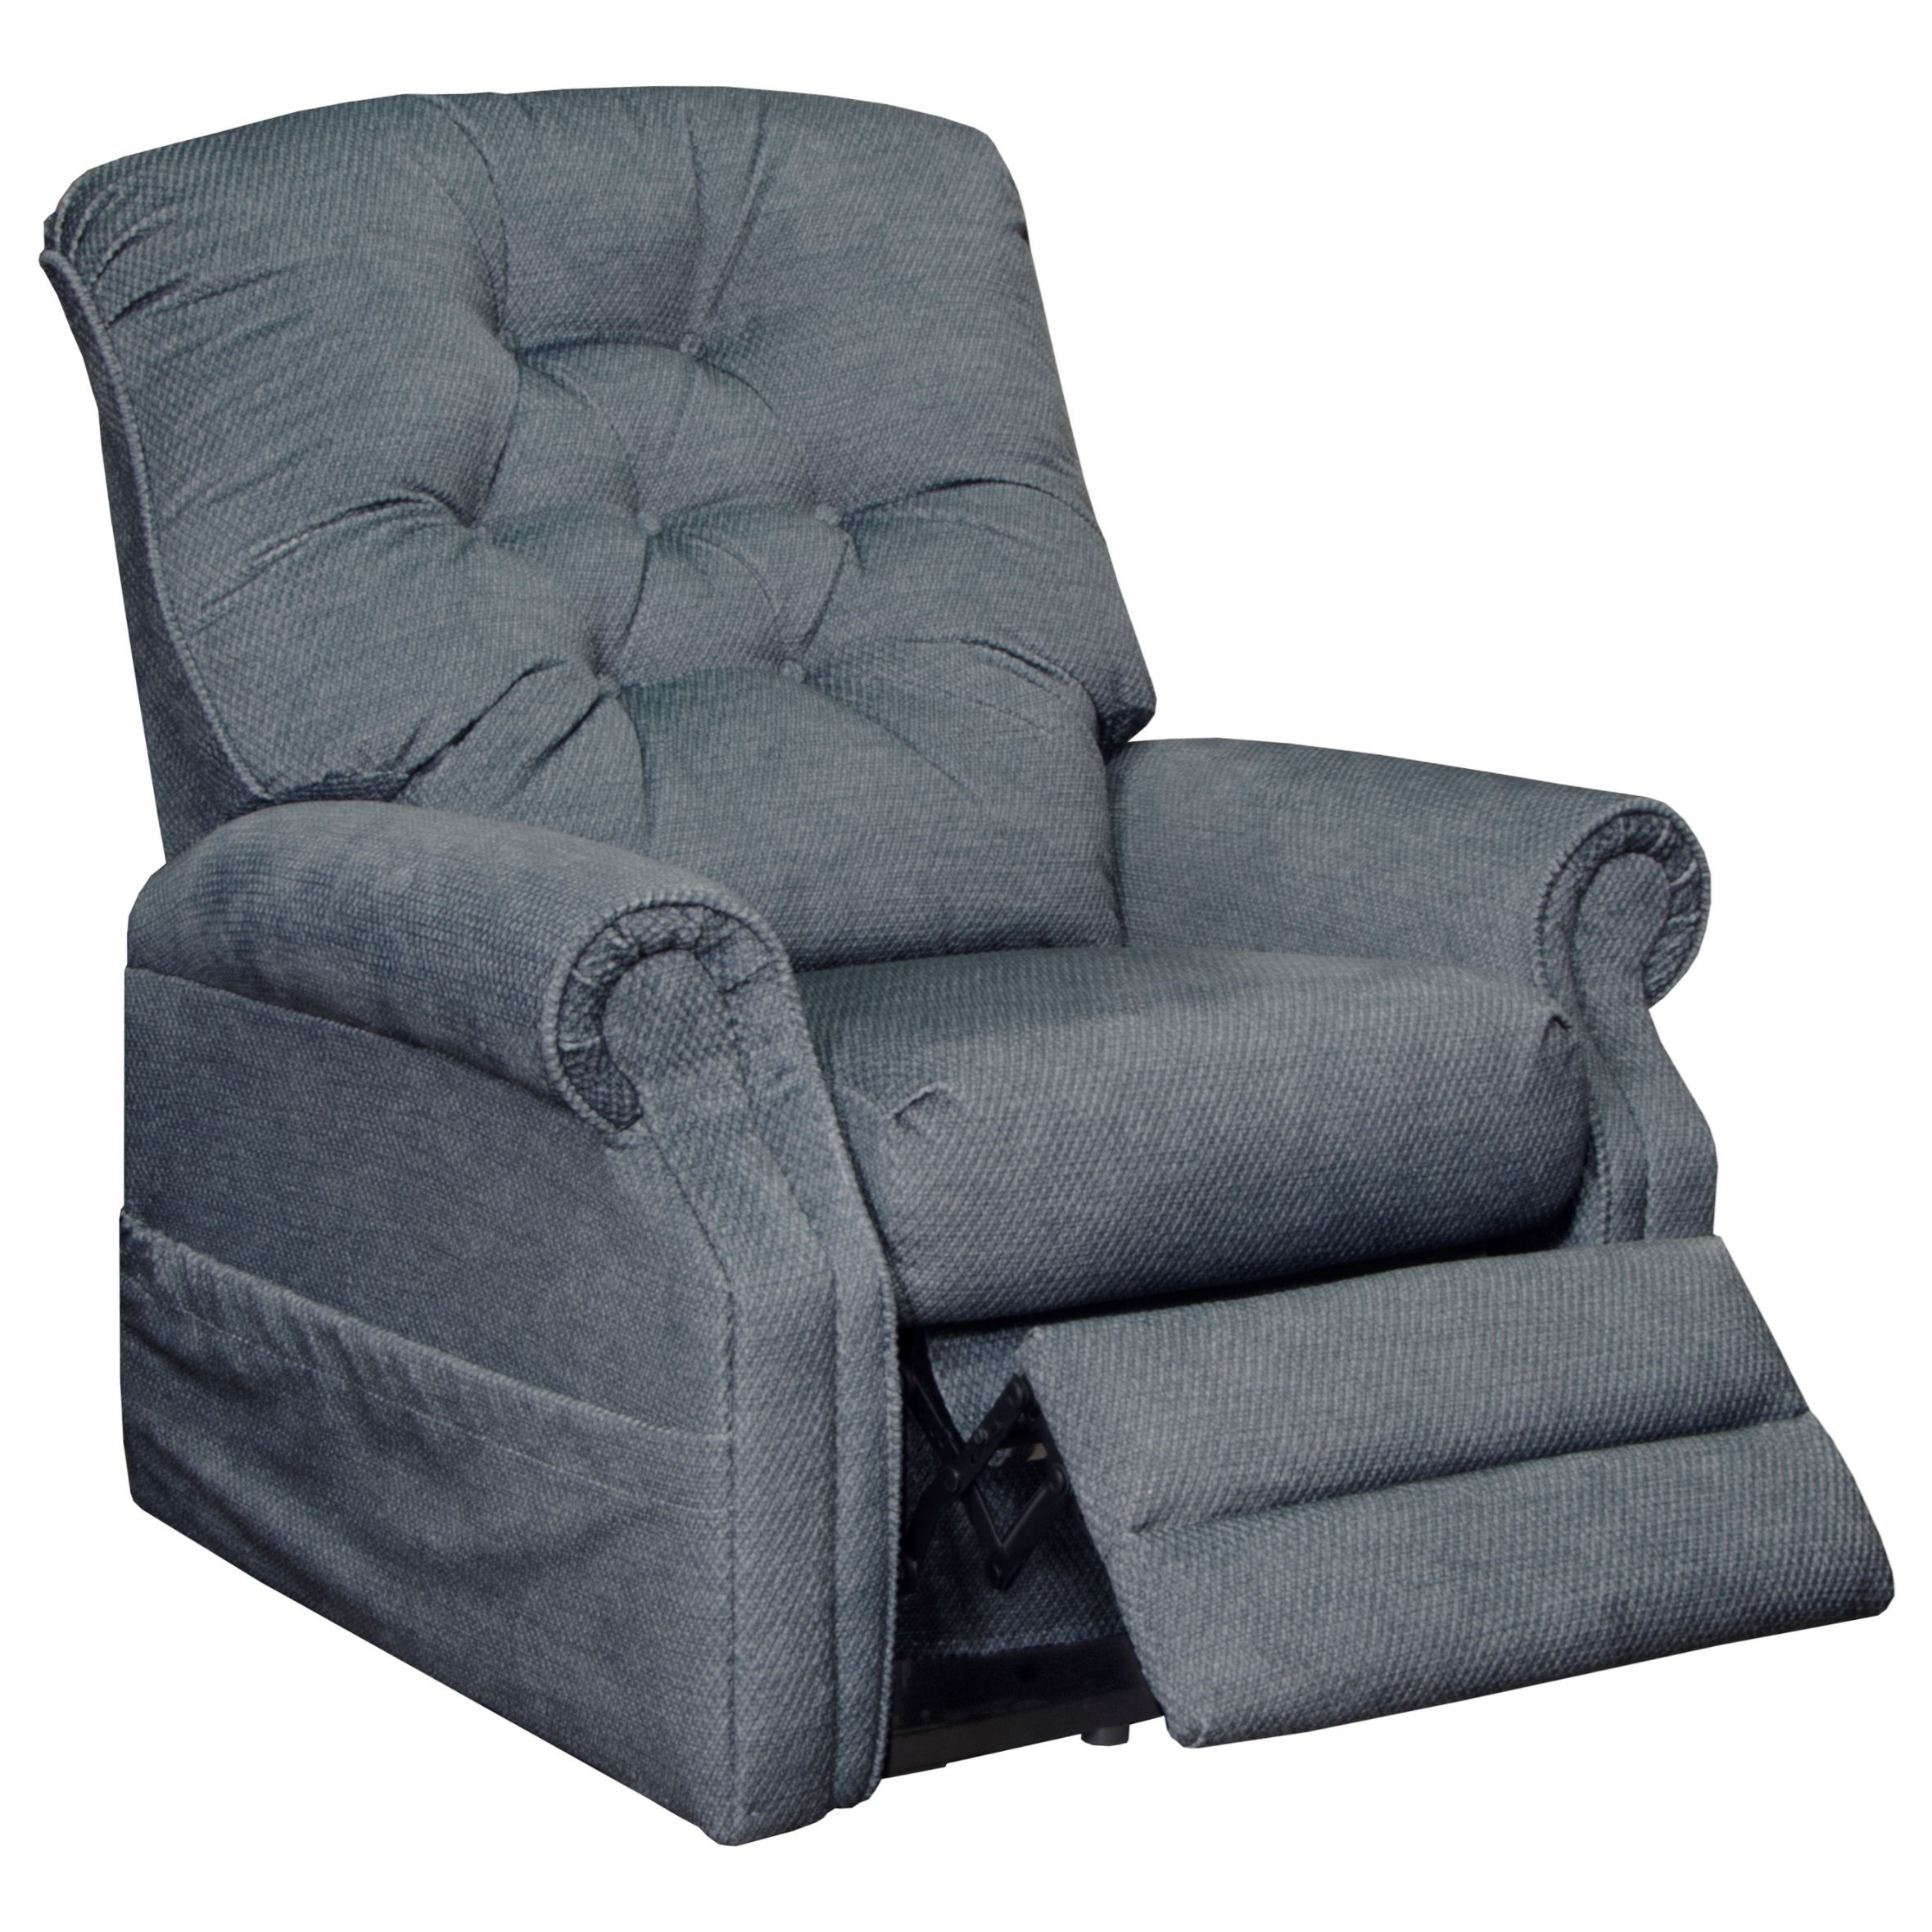 "4824 ""Pow'r Lift"" Recliner by Catnapper at Value City Furniture"